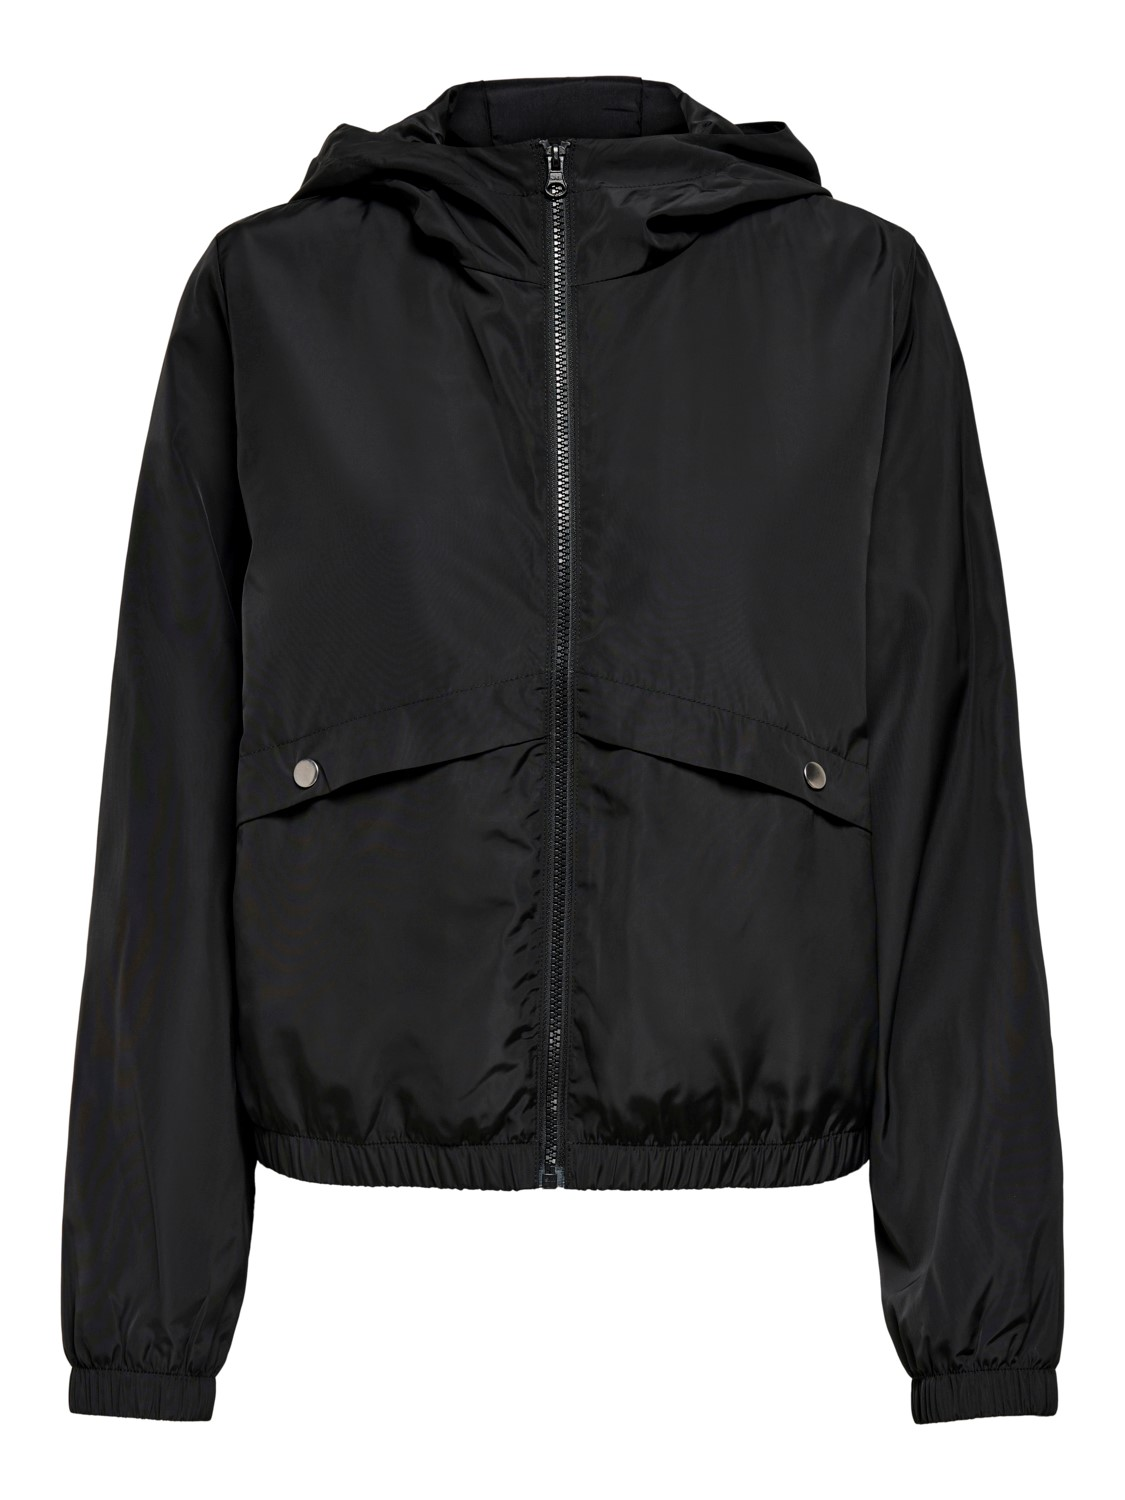 Jdyyo reach hood jacket black